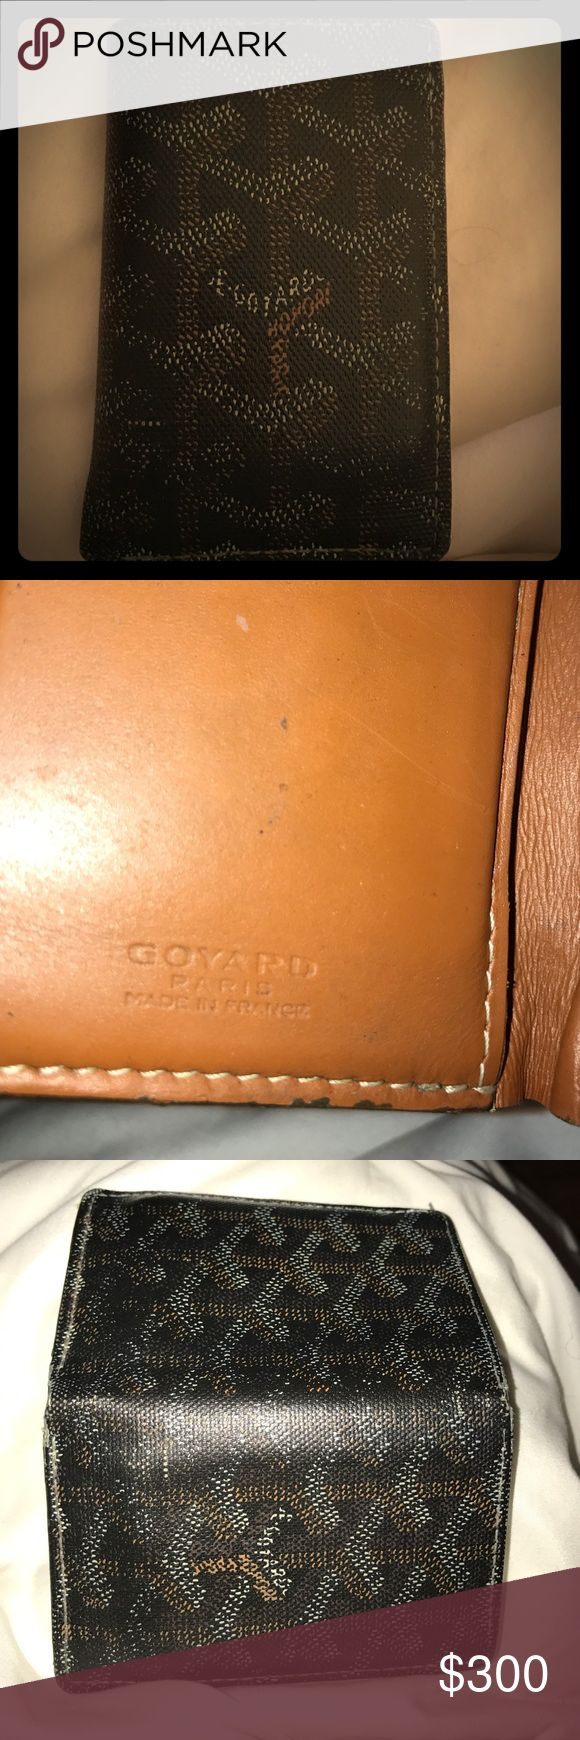 Goyard men's wallet gently used Paid $700. My partner has a hard time getting his cards in and out of the slots. Not that big of a deal but it annoys him. Goyard Accessories Key & Card Holders